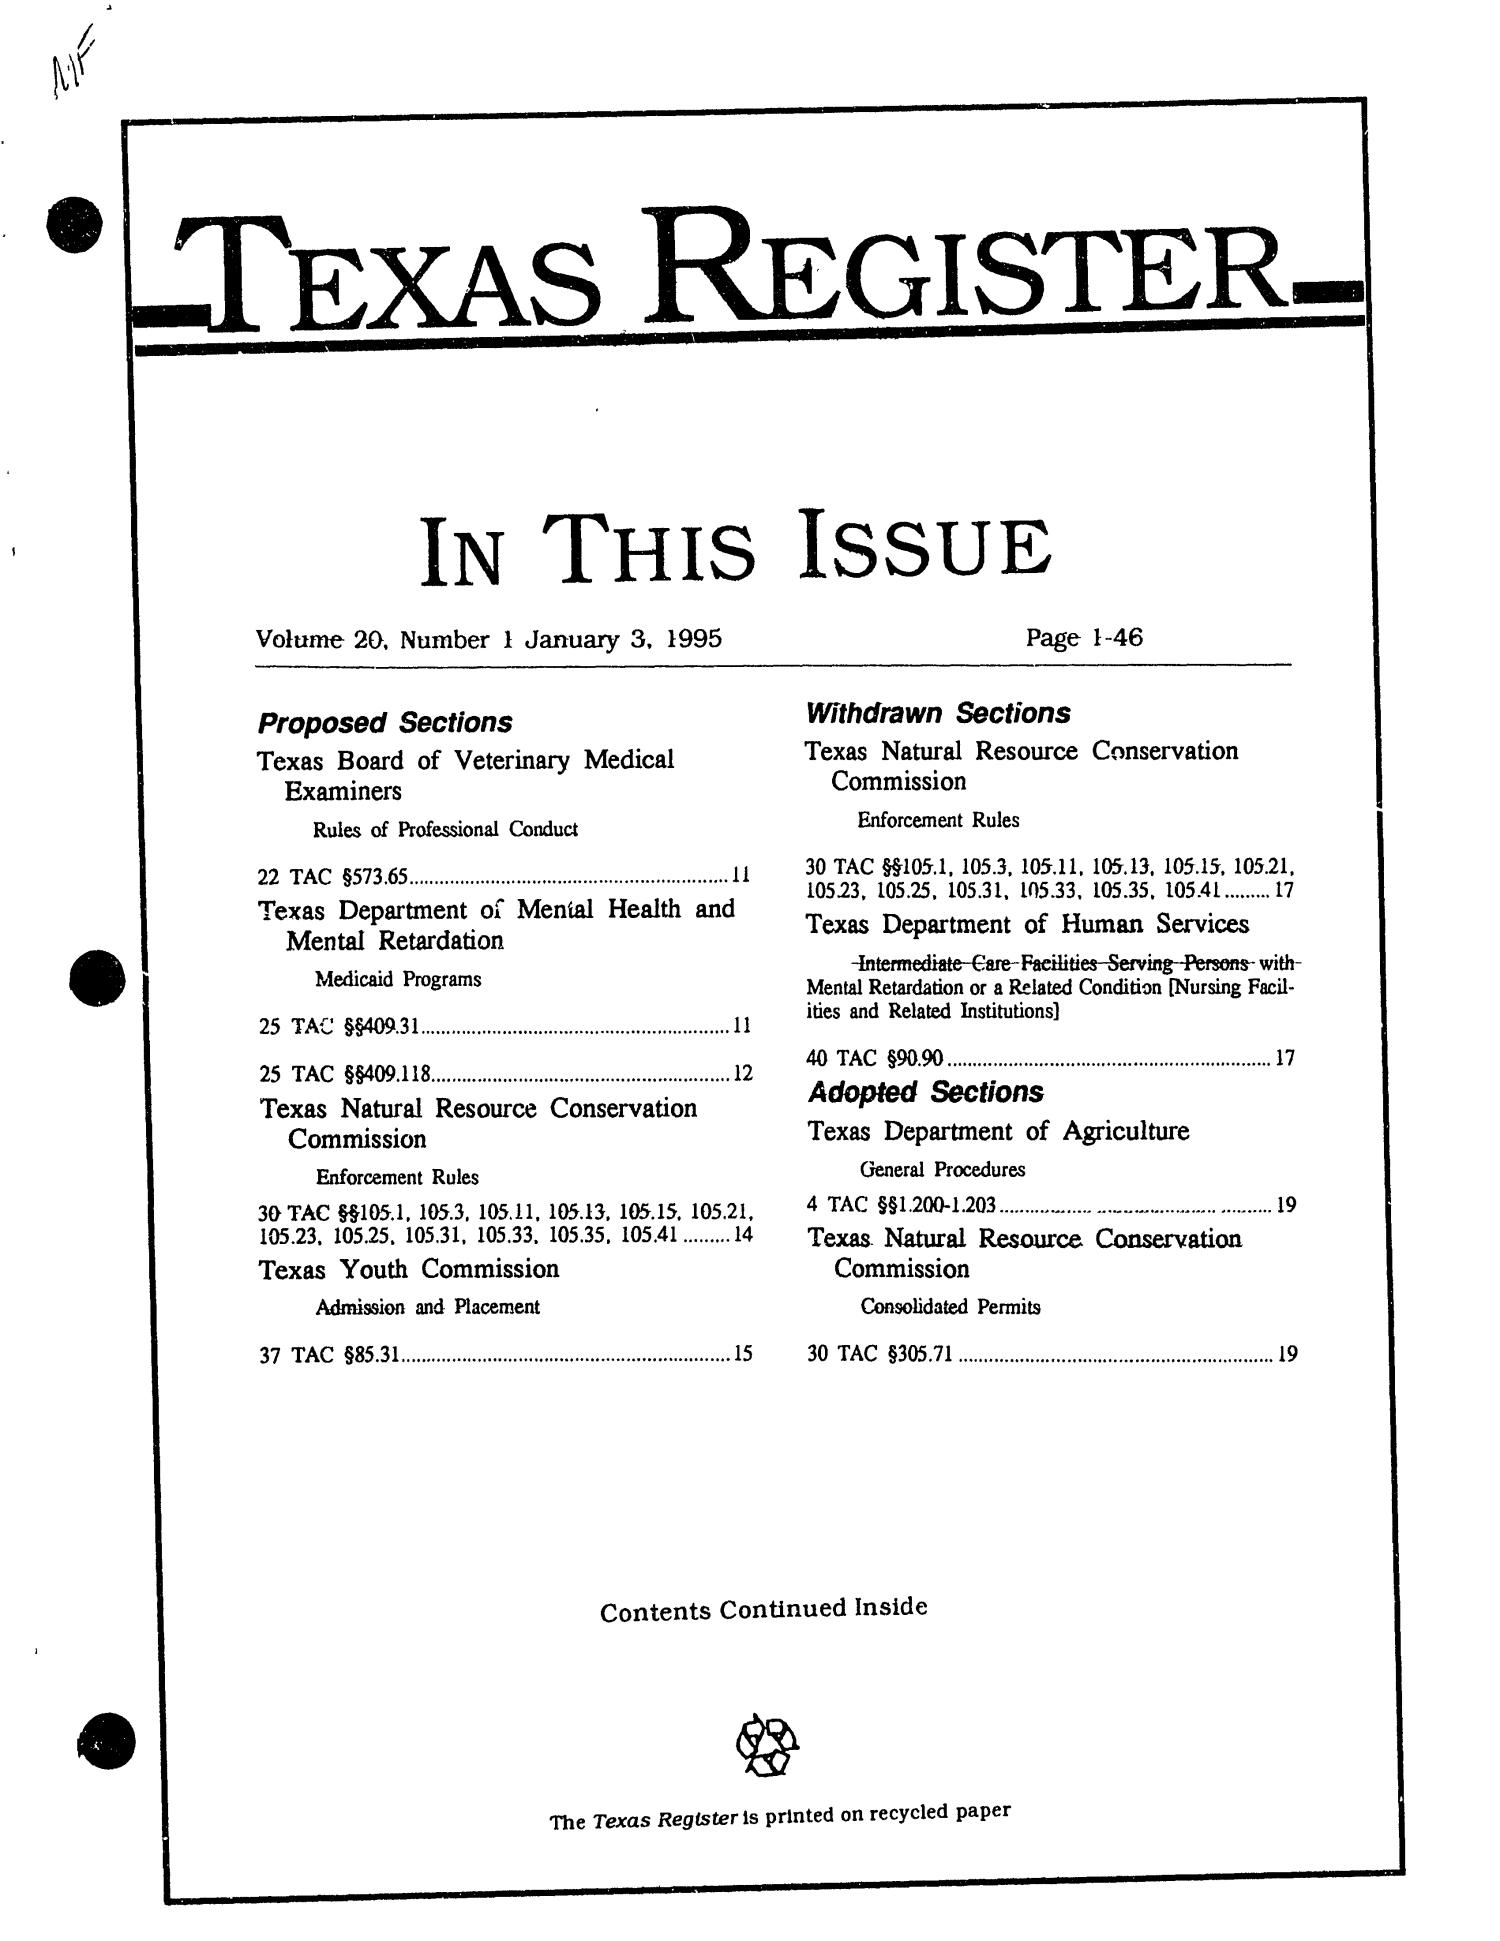 Texas Register, Volume 20, Number 1, Pages 1-46, January 3, 1995                                                                                                      Title Page